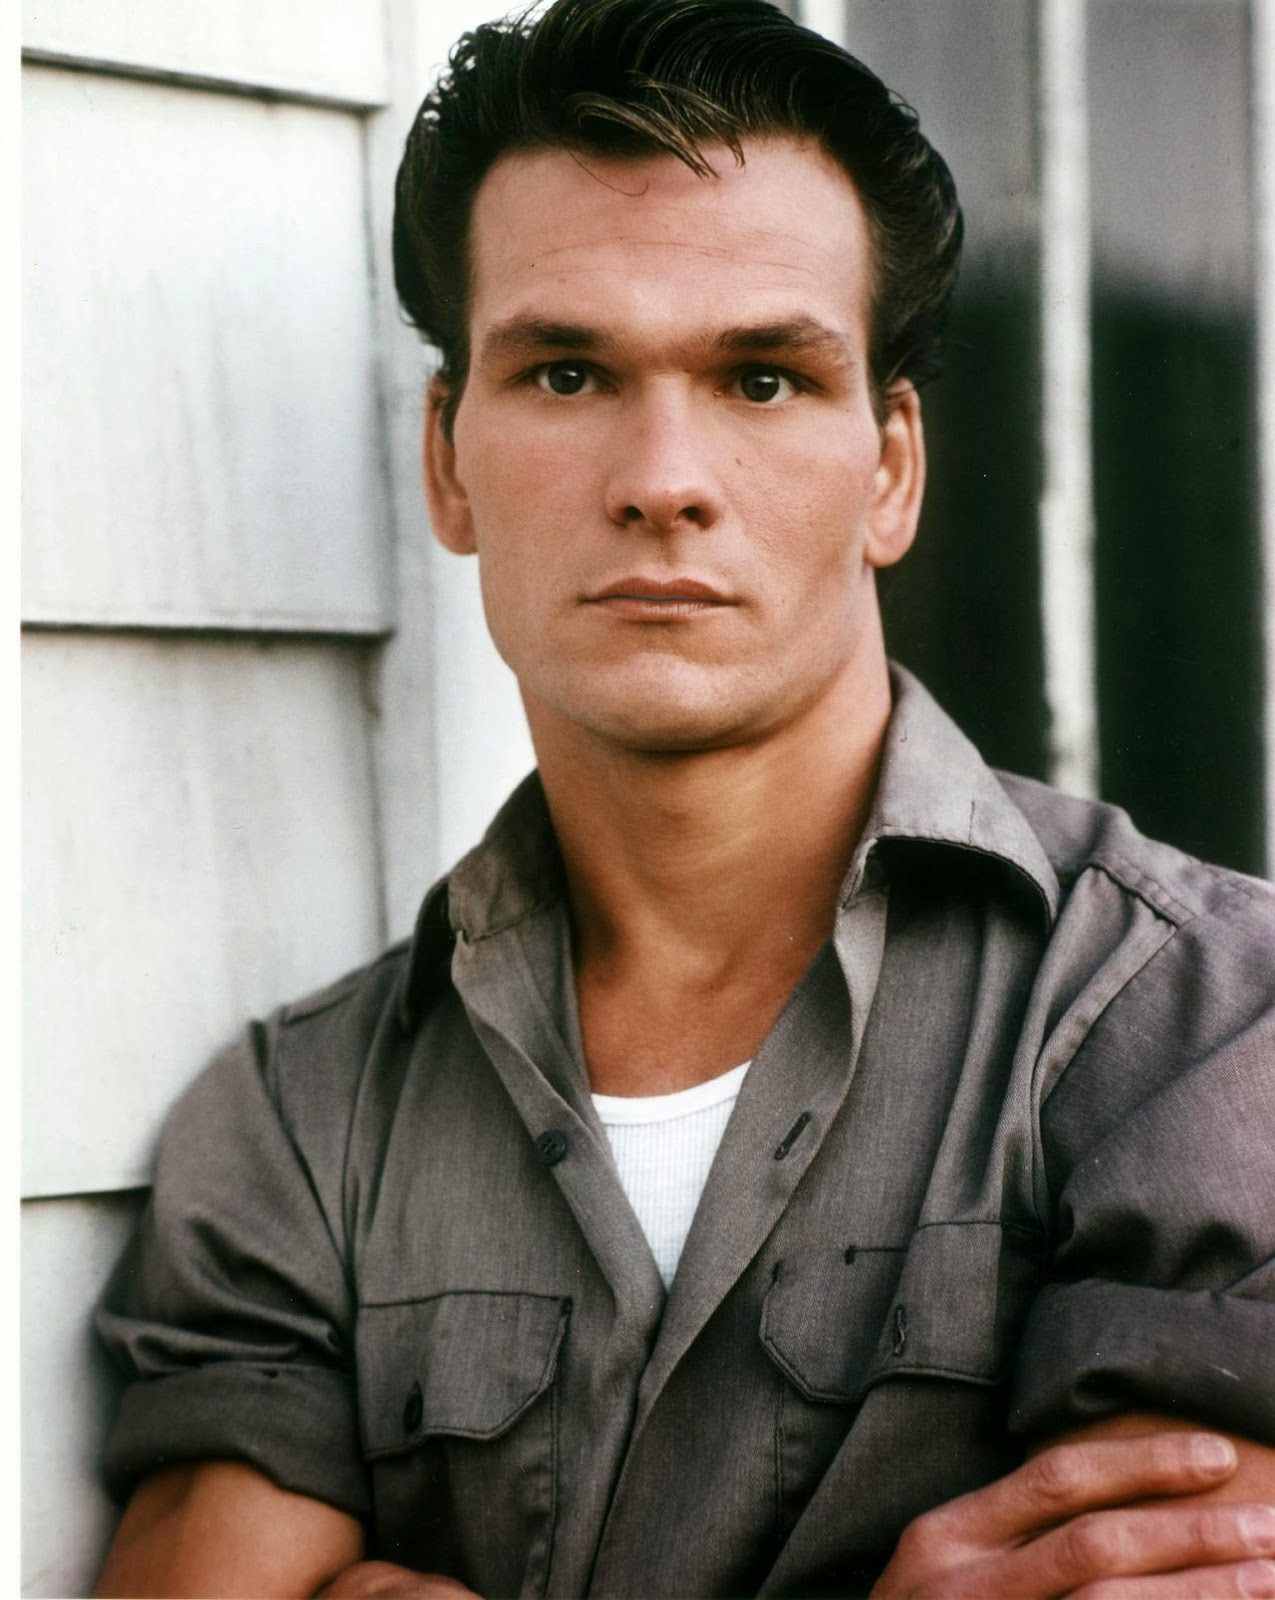 an analysis of the chapters on ponyboy who liked his hair Free summary and analysis of chapter 1 in se hinton's the outsiders that won  and is very focused on his hair:  and calls him ponyboy (now we know his.